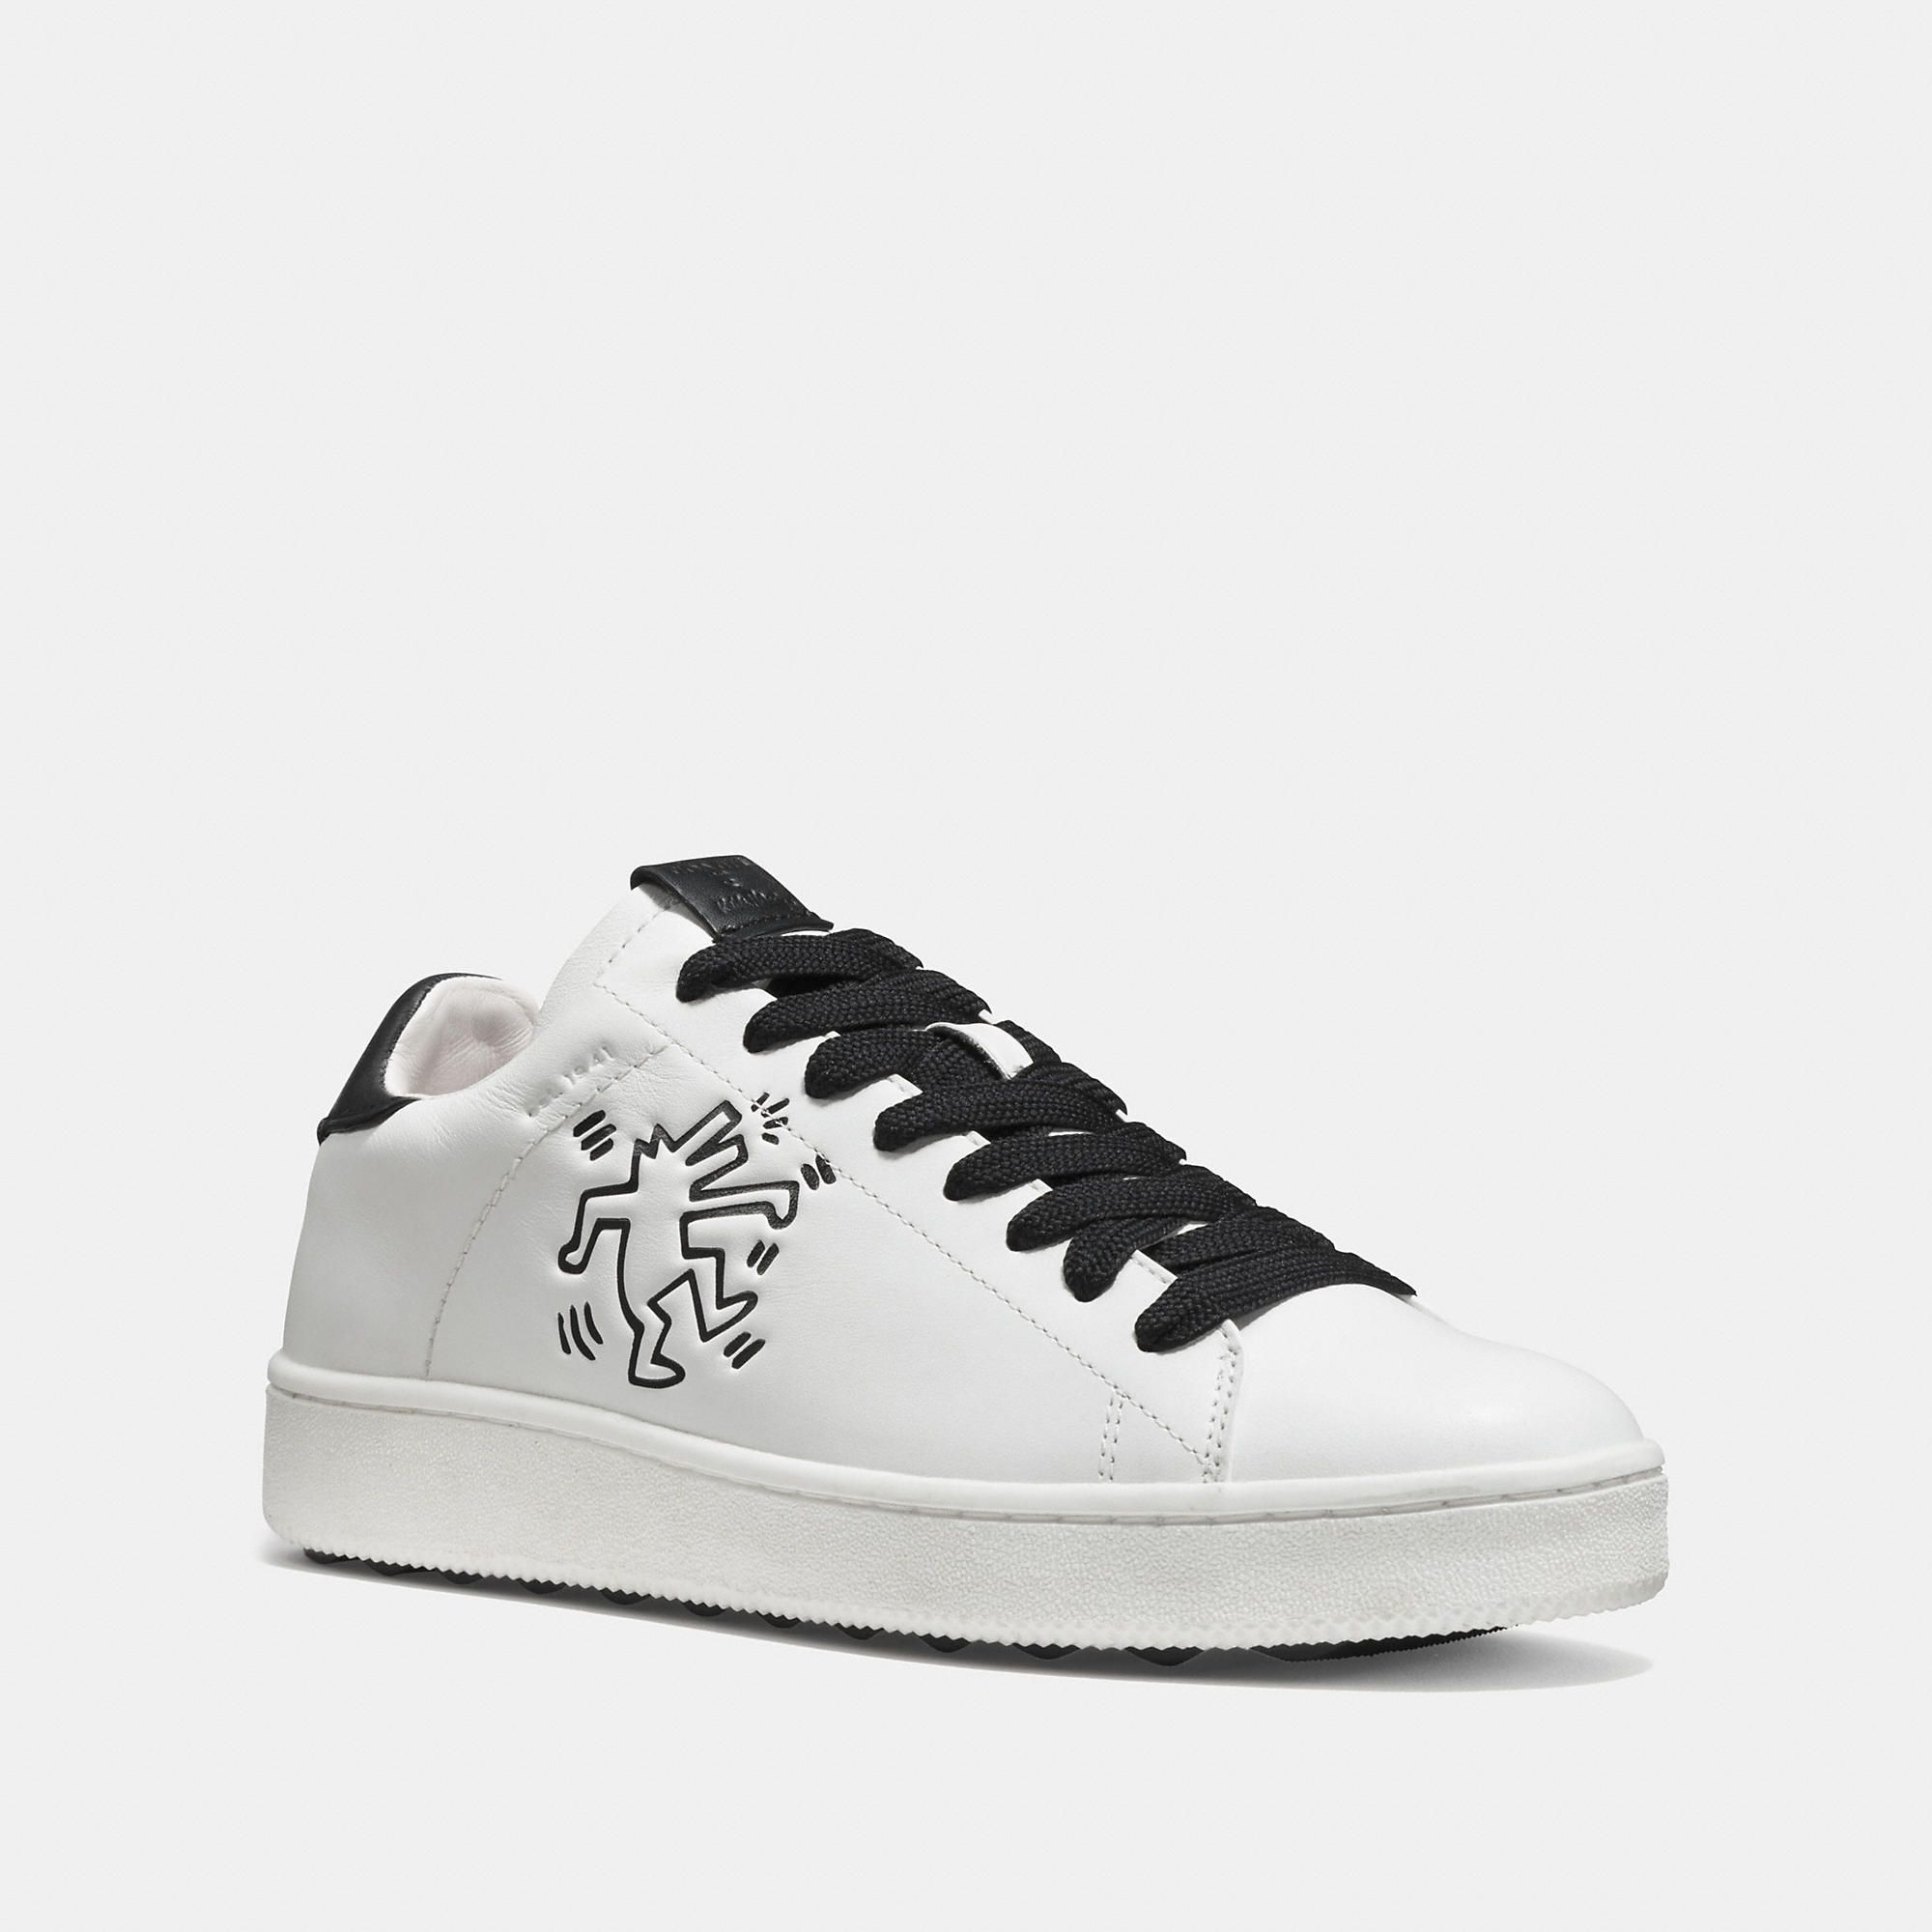 609ea70ba1 Coach x keith haring c101 low top sneaker | Products | Keith haring ...